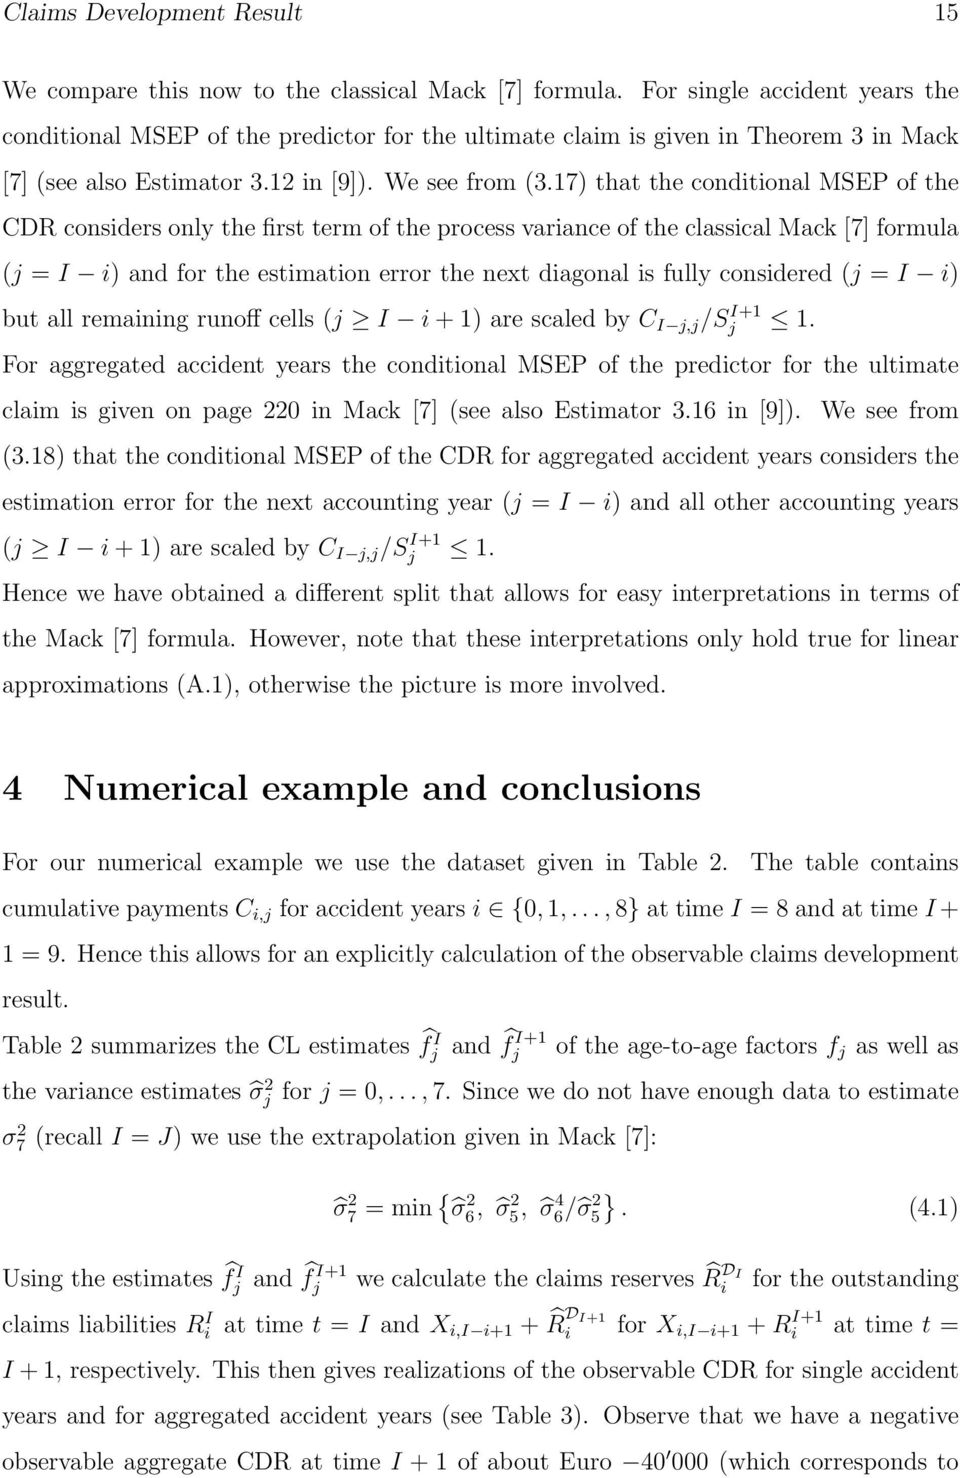 17 that the conditional MSEP of the CDR considers only the first term of the process variance of the classical Mack [7] formula = i and for the estimation error the next diagonal is fully considered